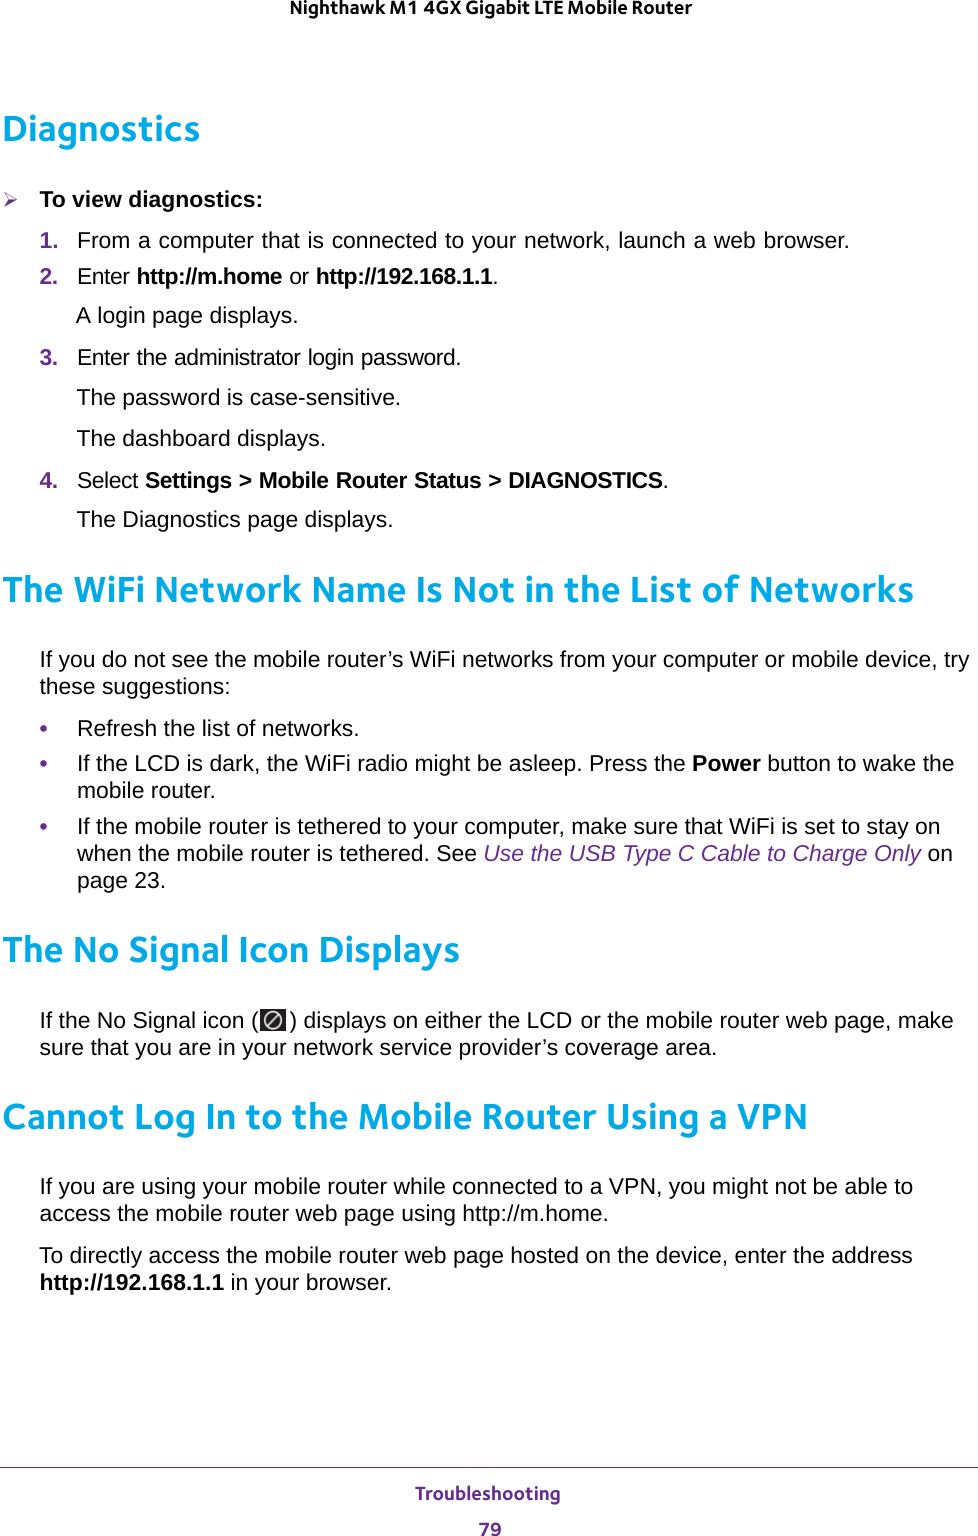 telstra wireless router instructions pdf